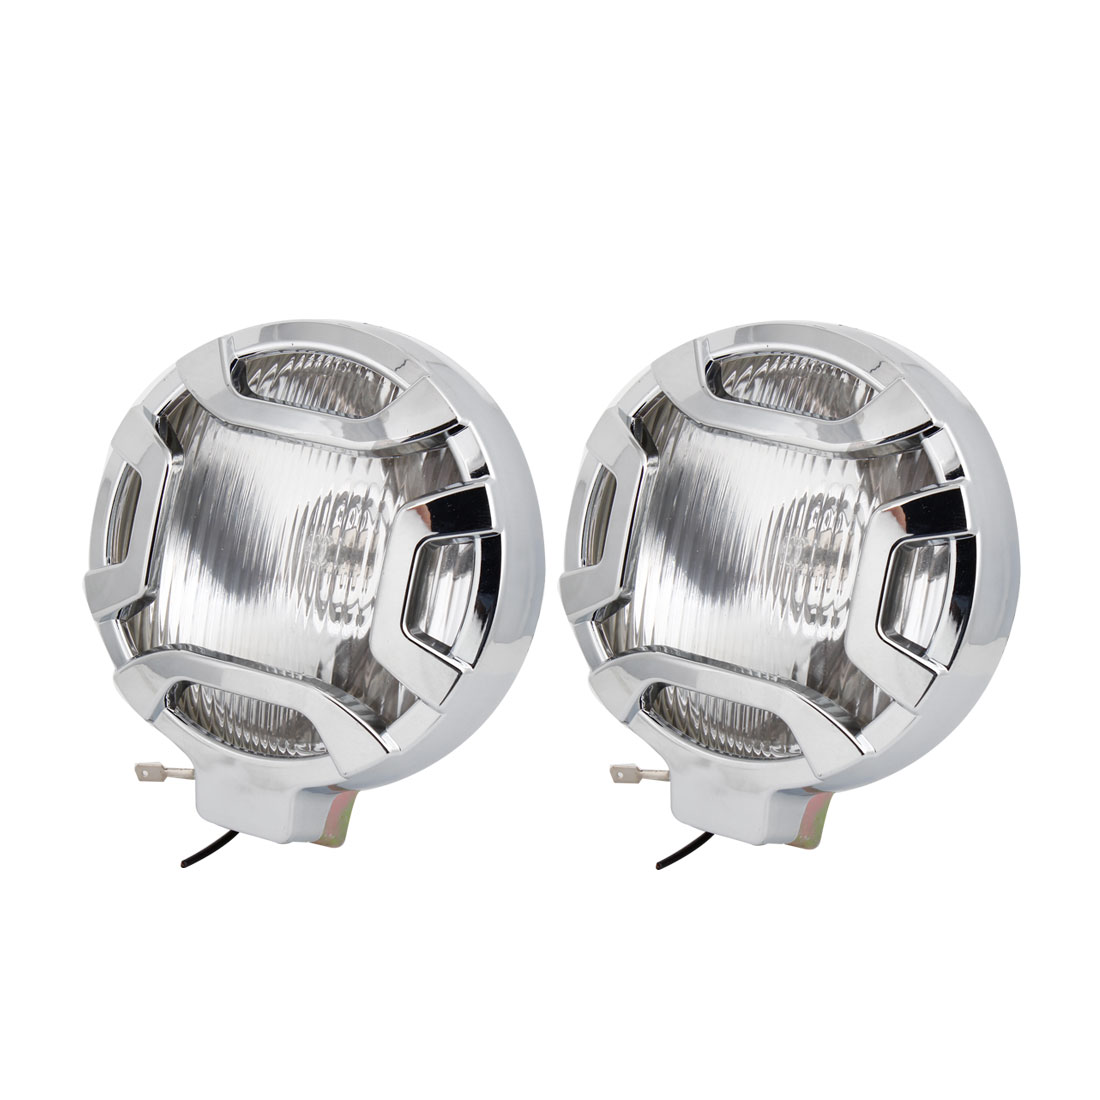 2 Pcs DC12V H3 55W Road Runner Optical Lens Fog Lights Driving Lamps Warm White for Car